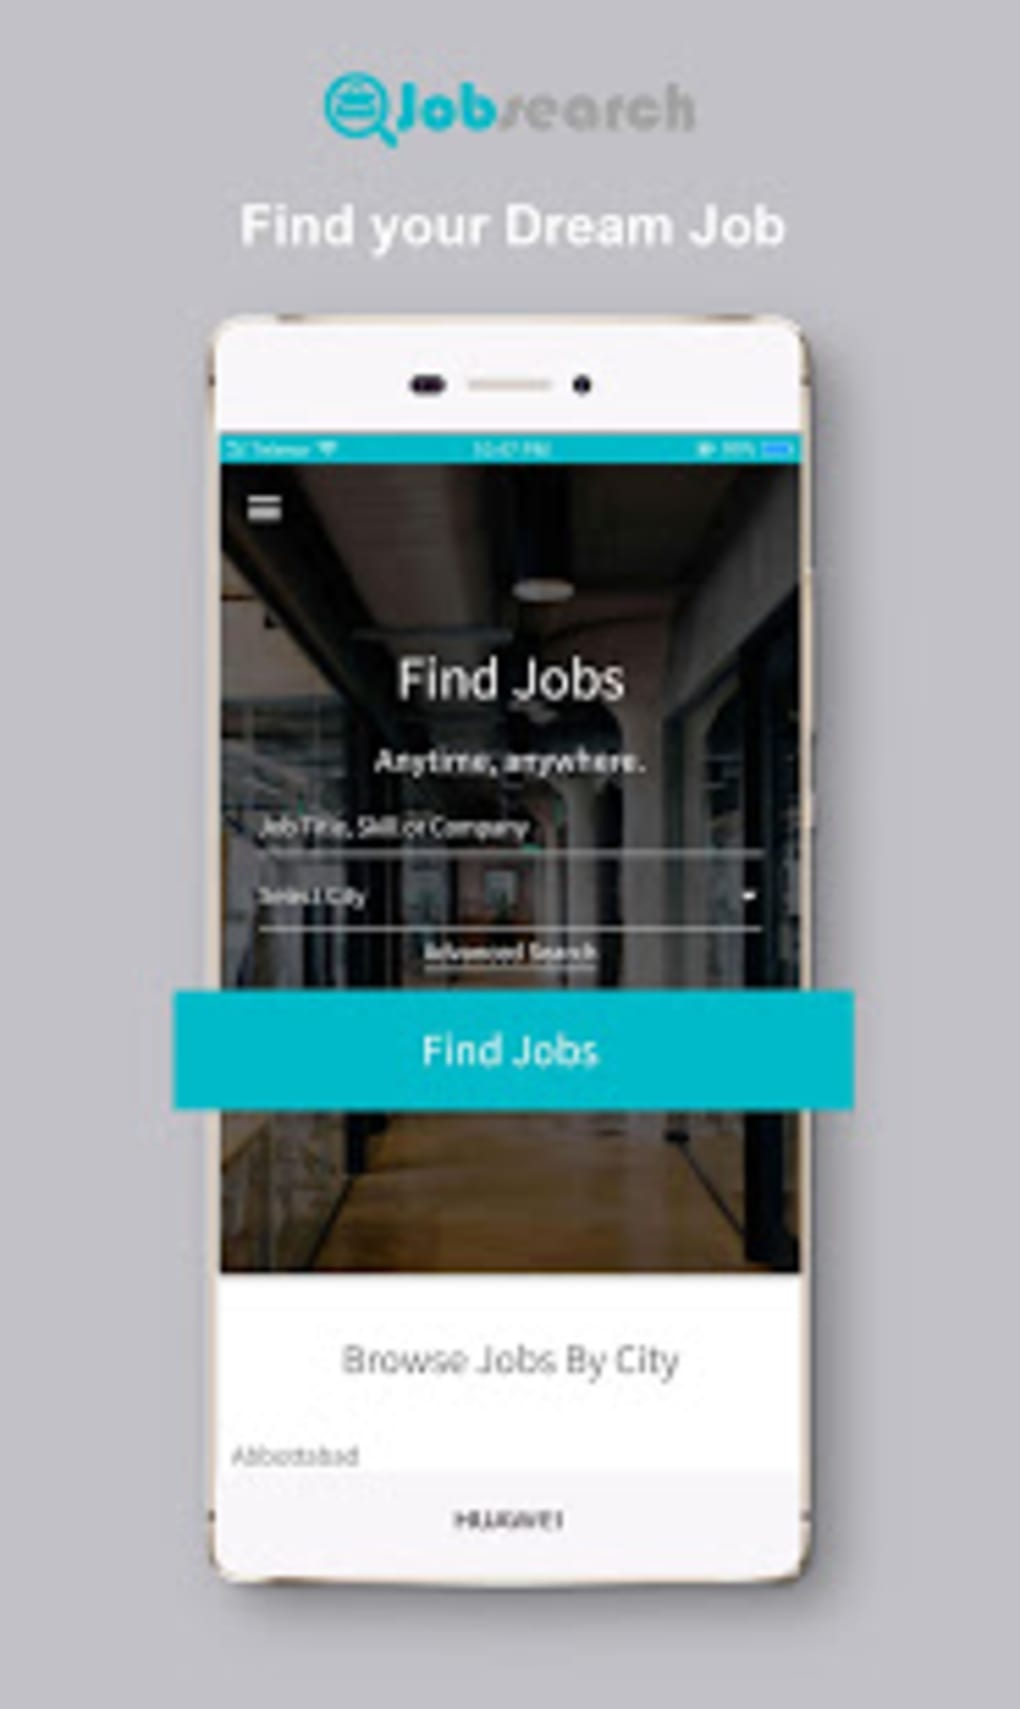 Jobs in Mozambique for Android - Download